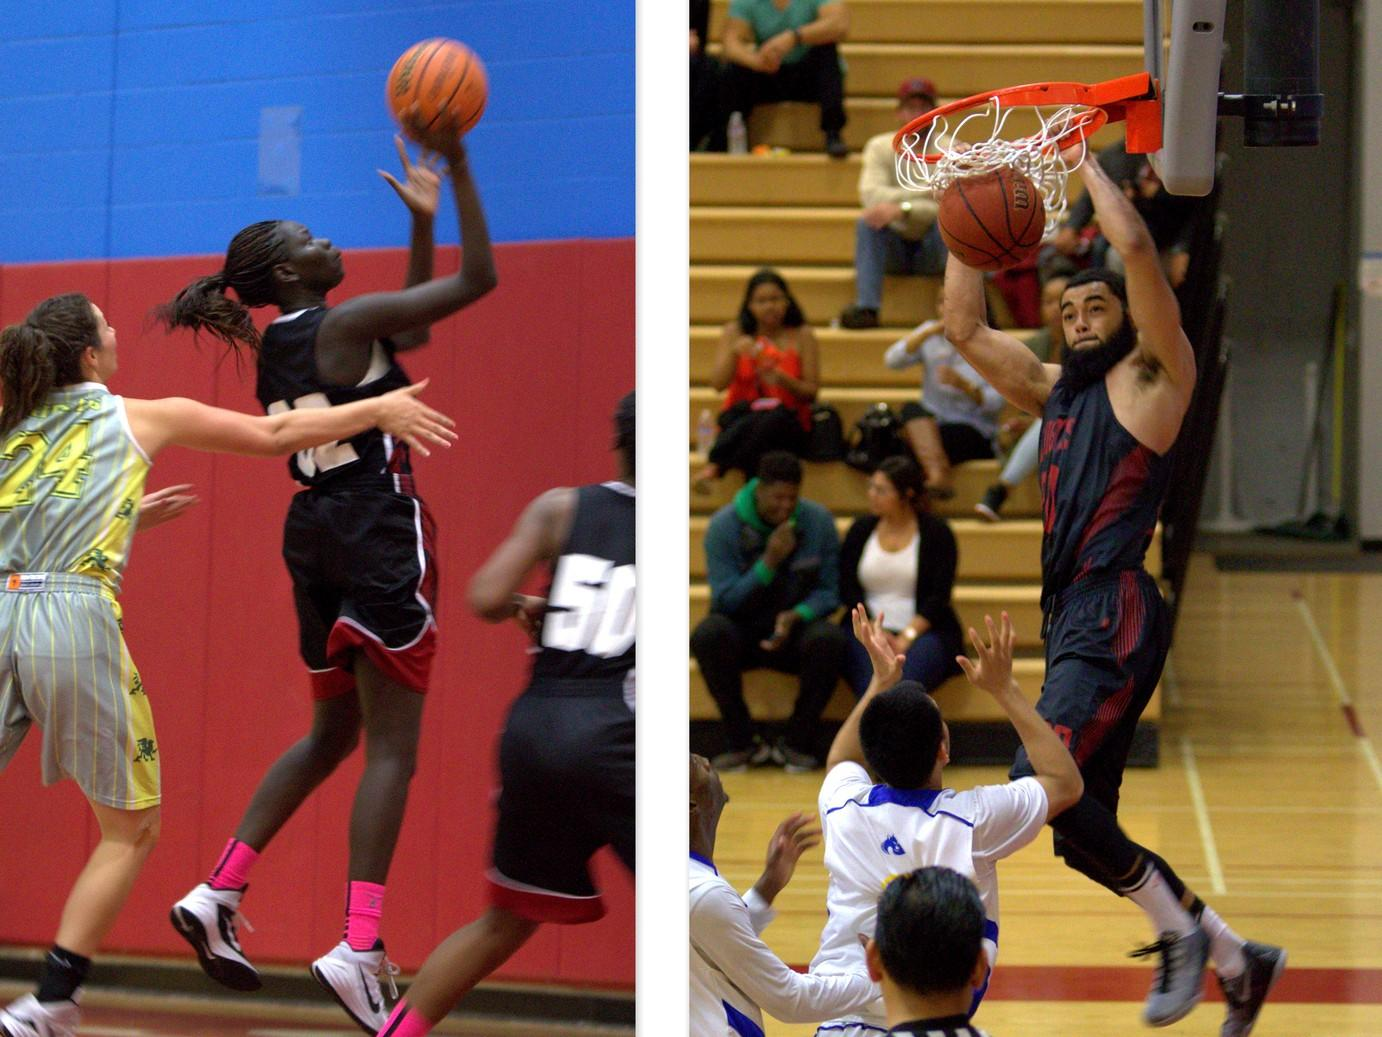 Sophomores Nyaduop Lam (left) and Chris Burton (right) both finished the basketball season by leading the women's and men's basketball teams in scoring at San Diego City College. Photo credit: David Pradel